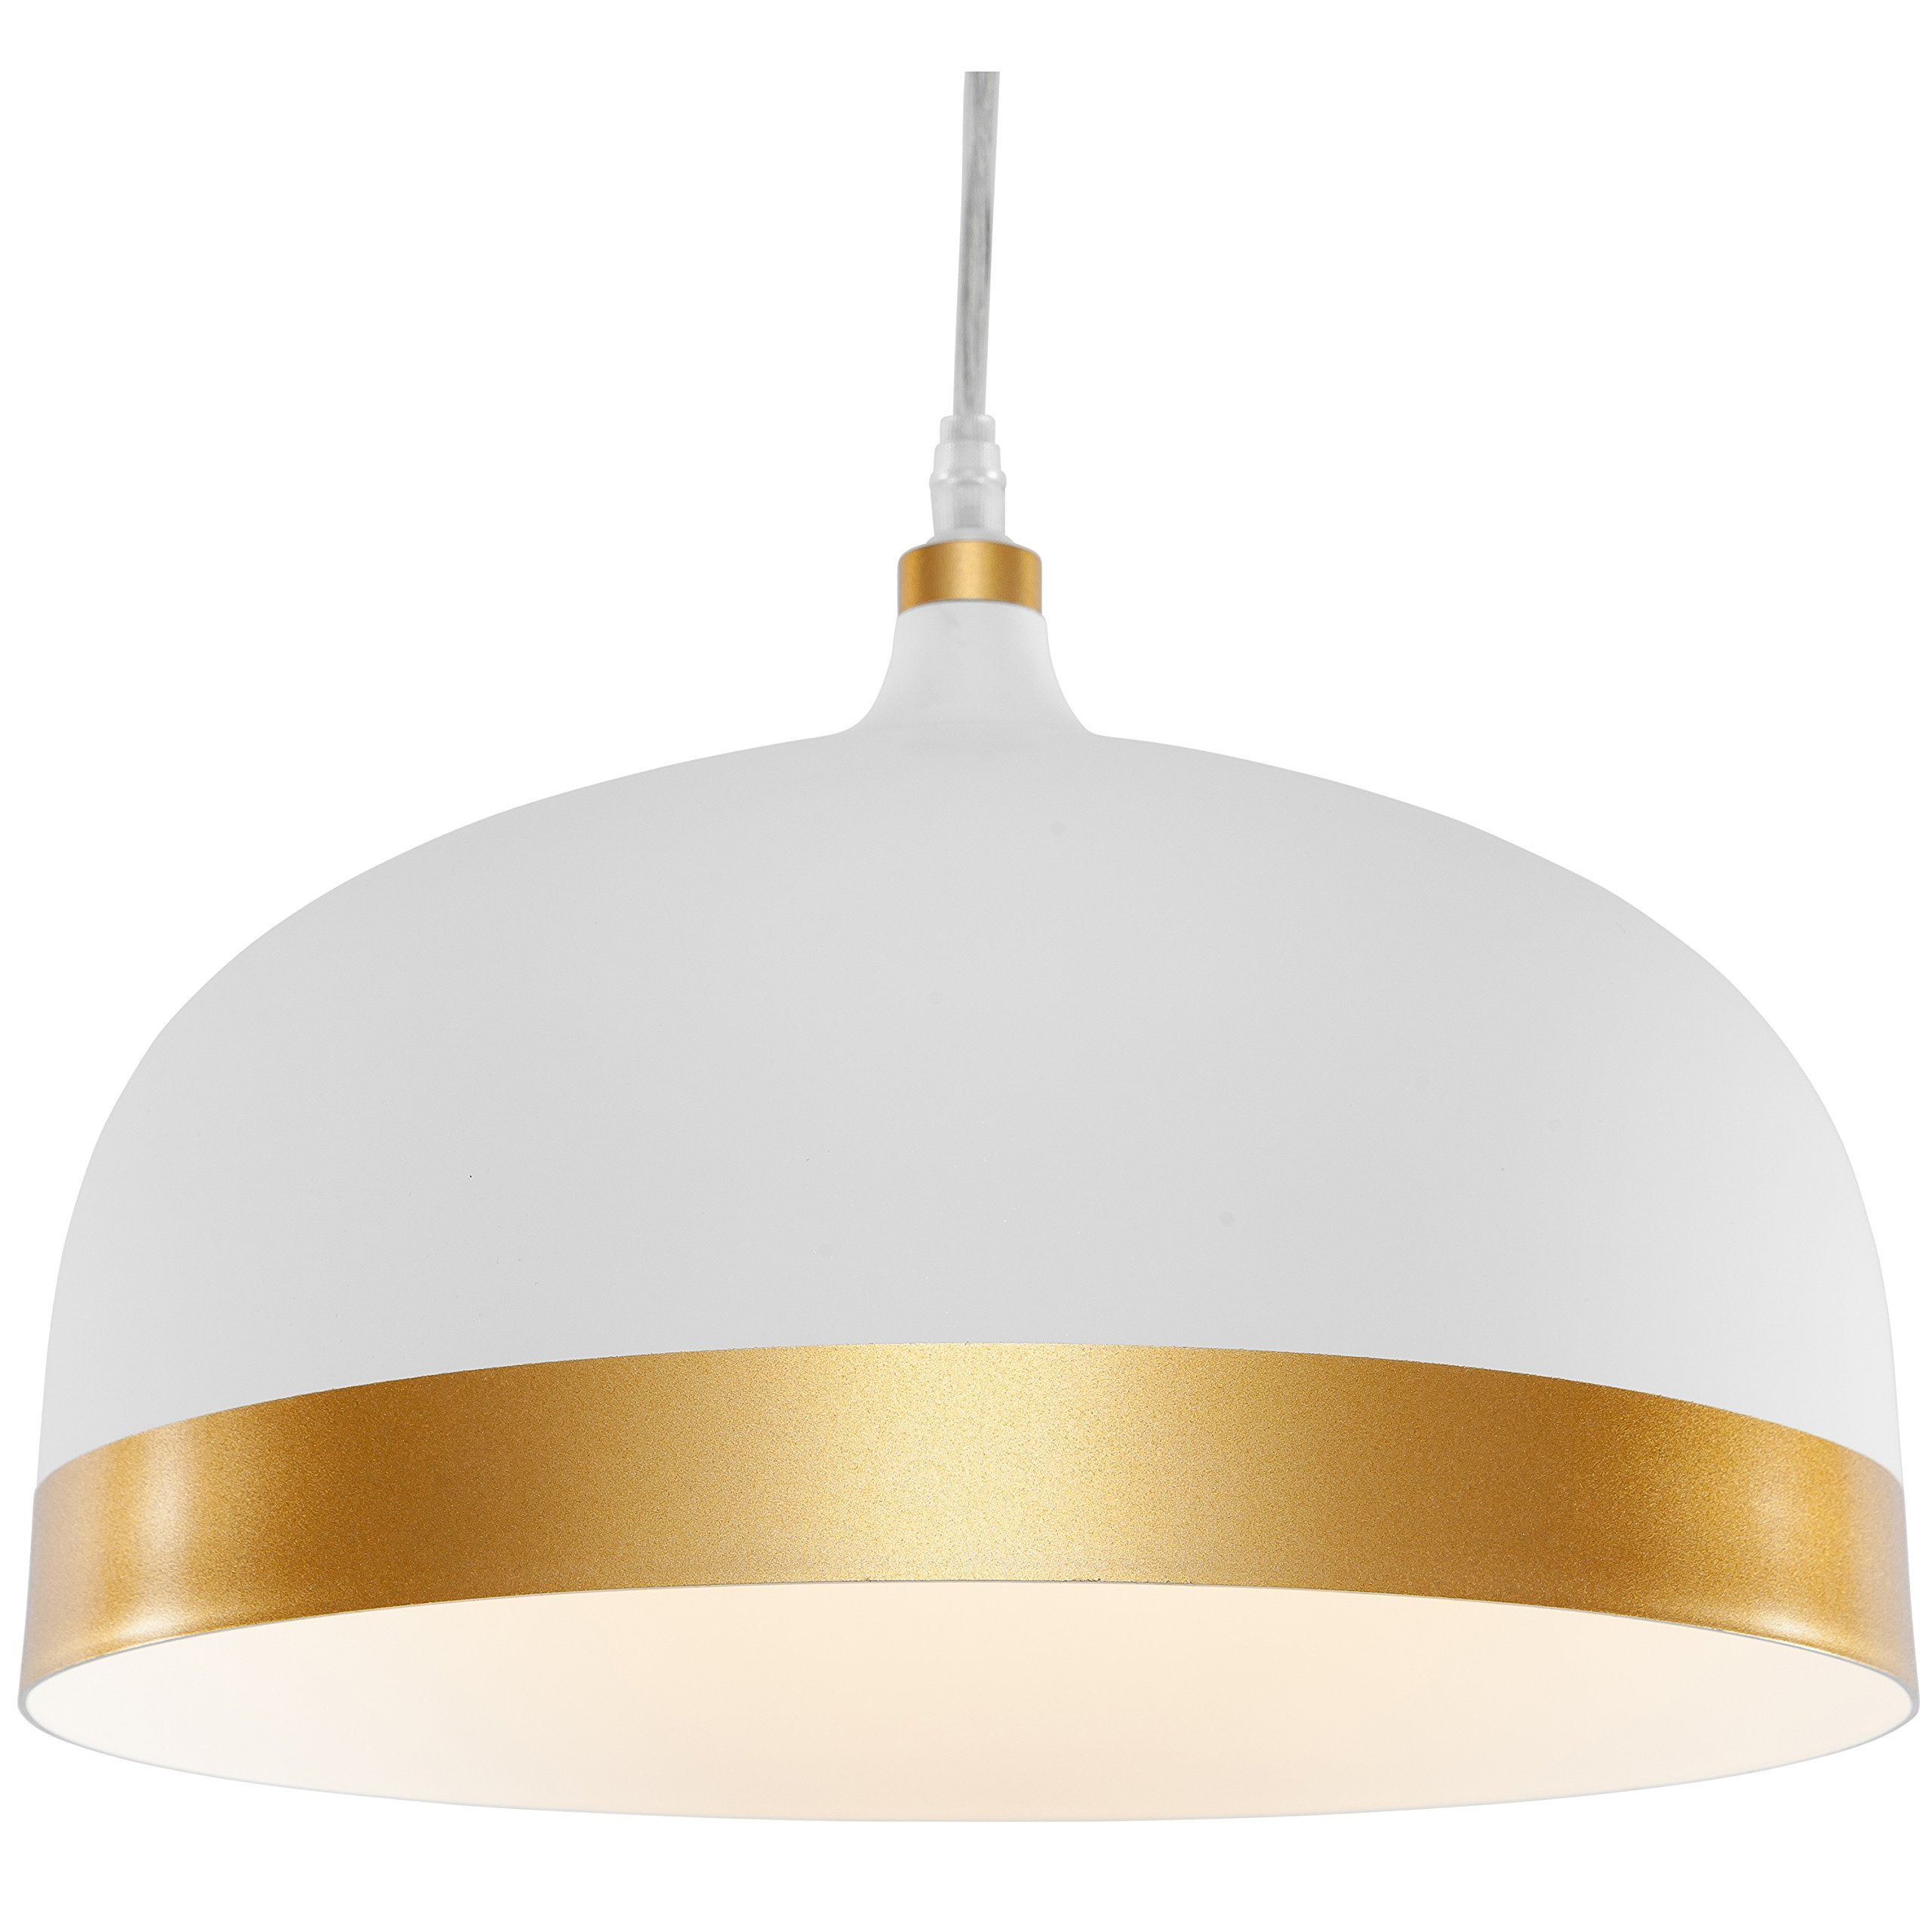 Light Society Melaina Pendant Light, White Shade with Gold Band and Copper Interior, Modern Industrial Farmhouse Lighting Fixture (LS-C170-WHI-GLD)